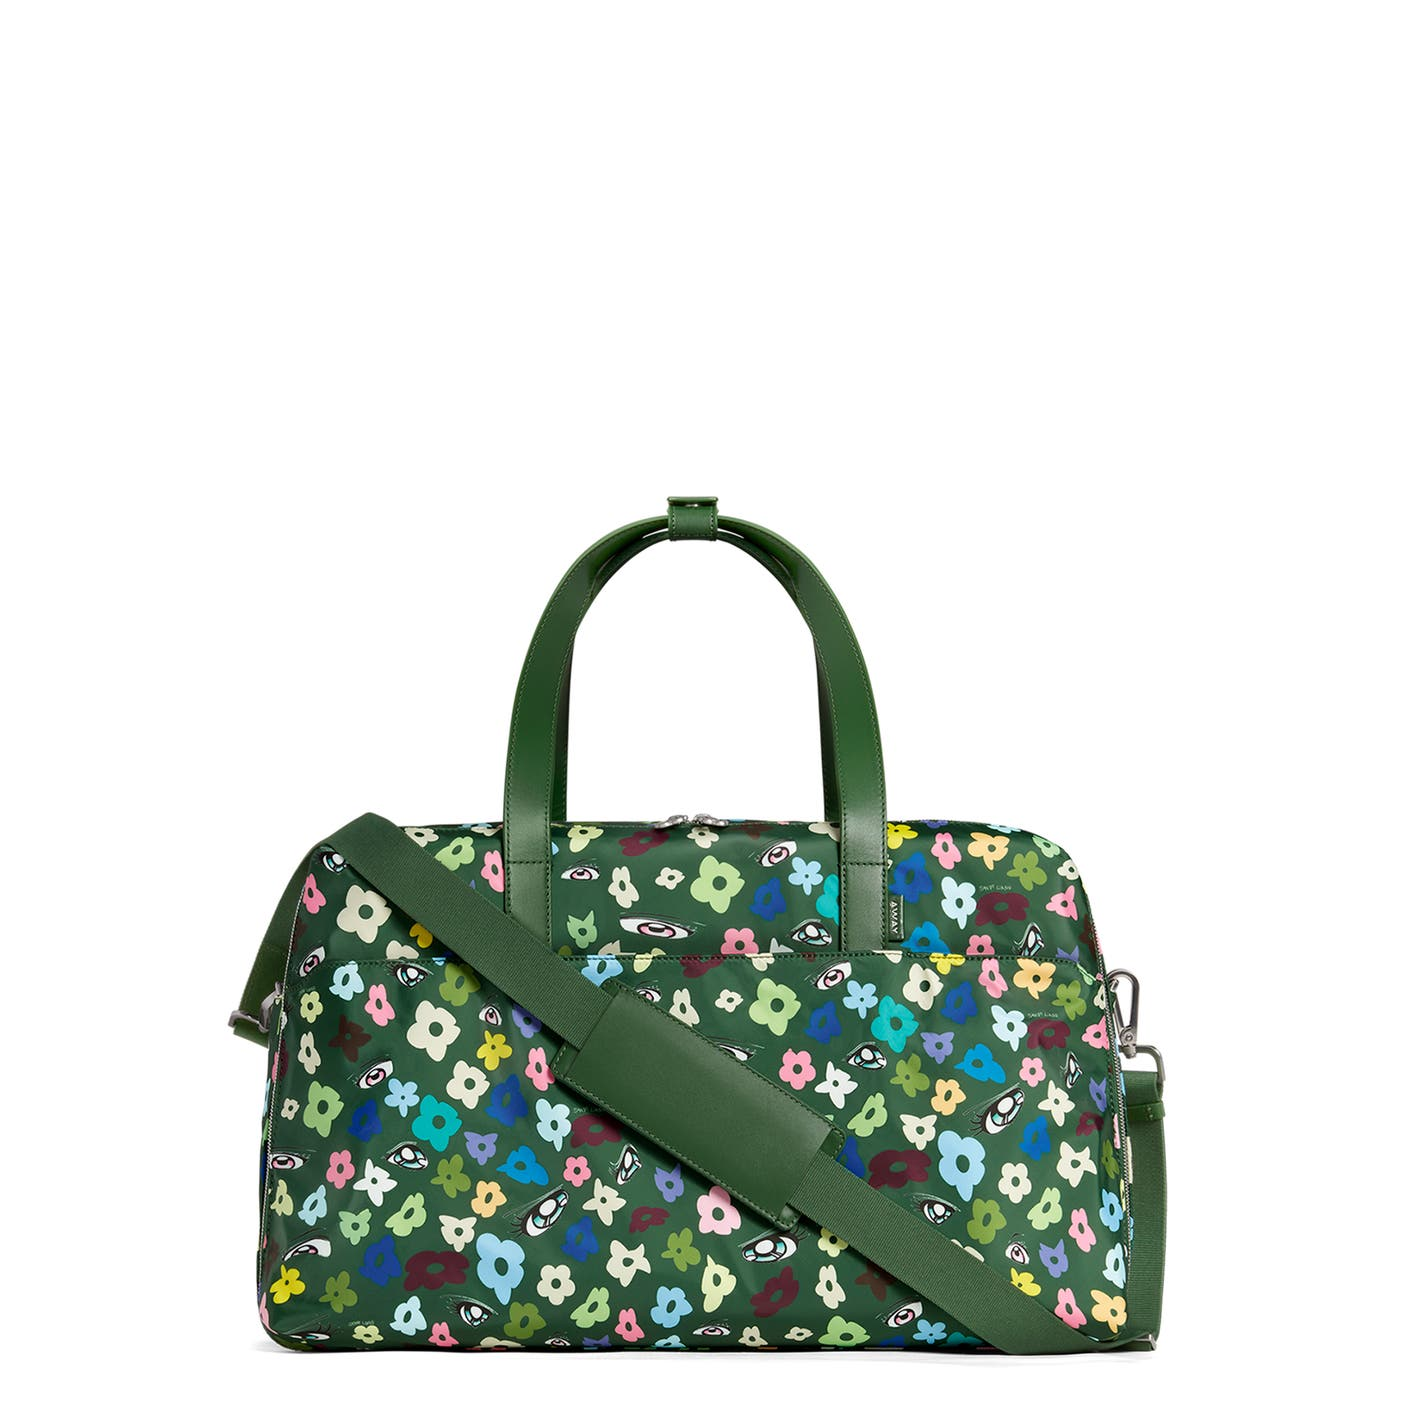 The Large Everywhere Bag by Sandy Liang